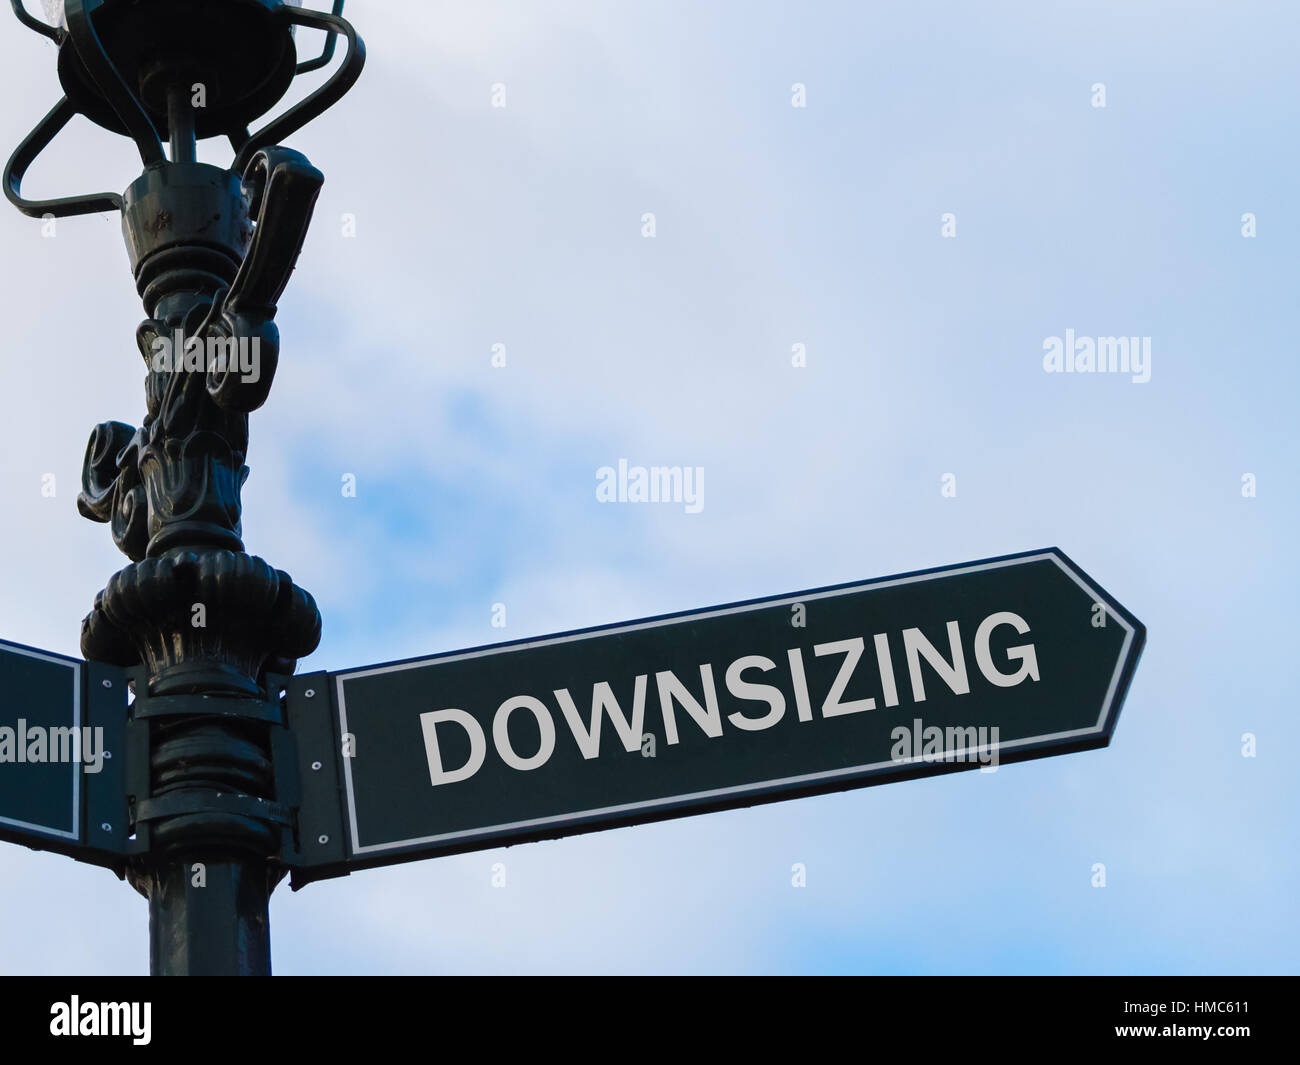 Street lighting pole with conceptual message Downsizing on directional arrow over blue cloudy background. - Stock Image